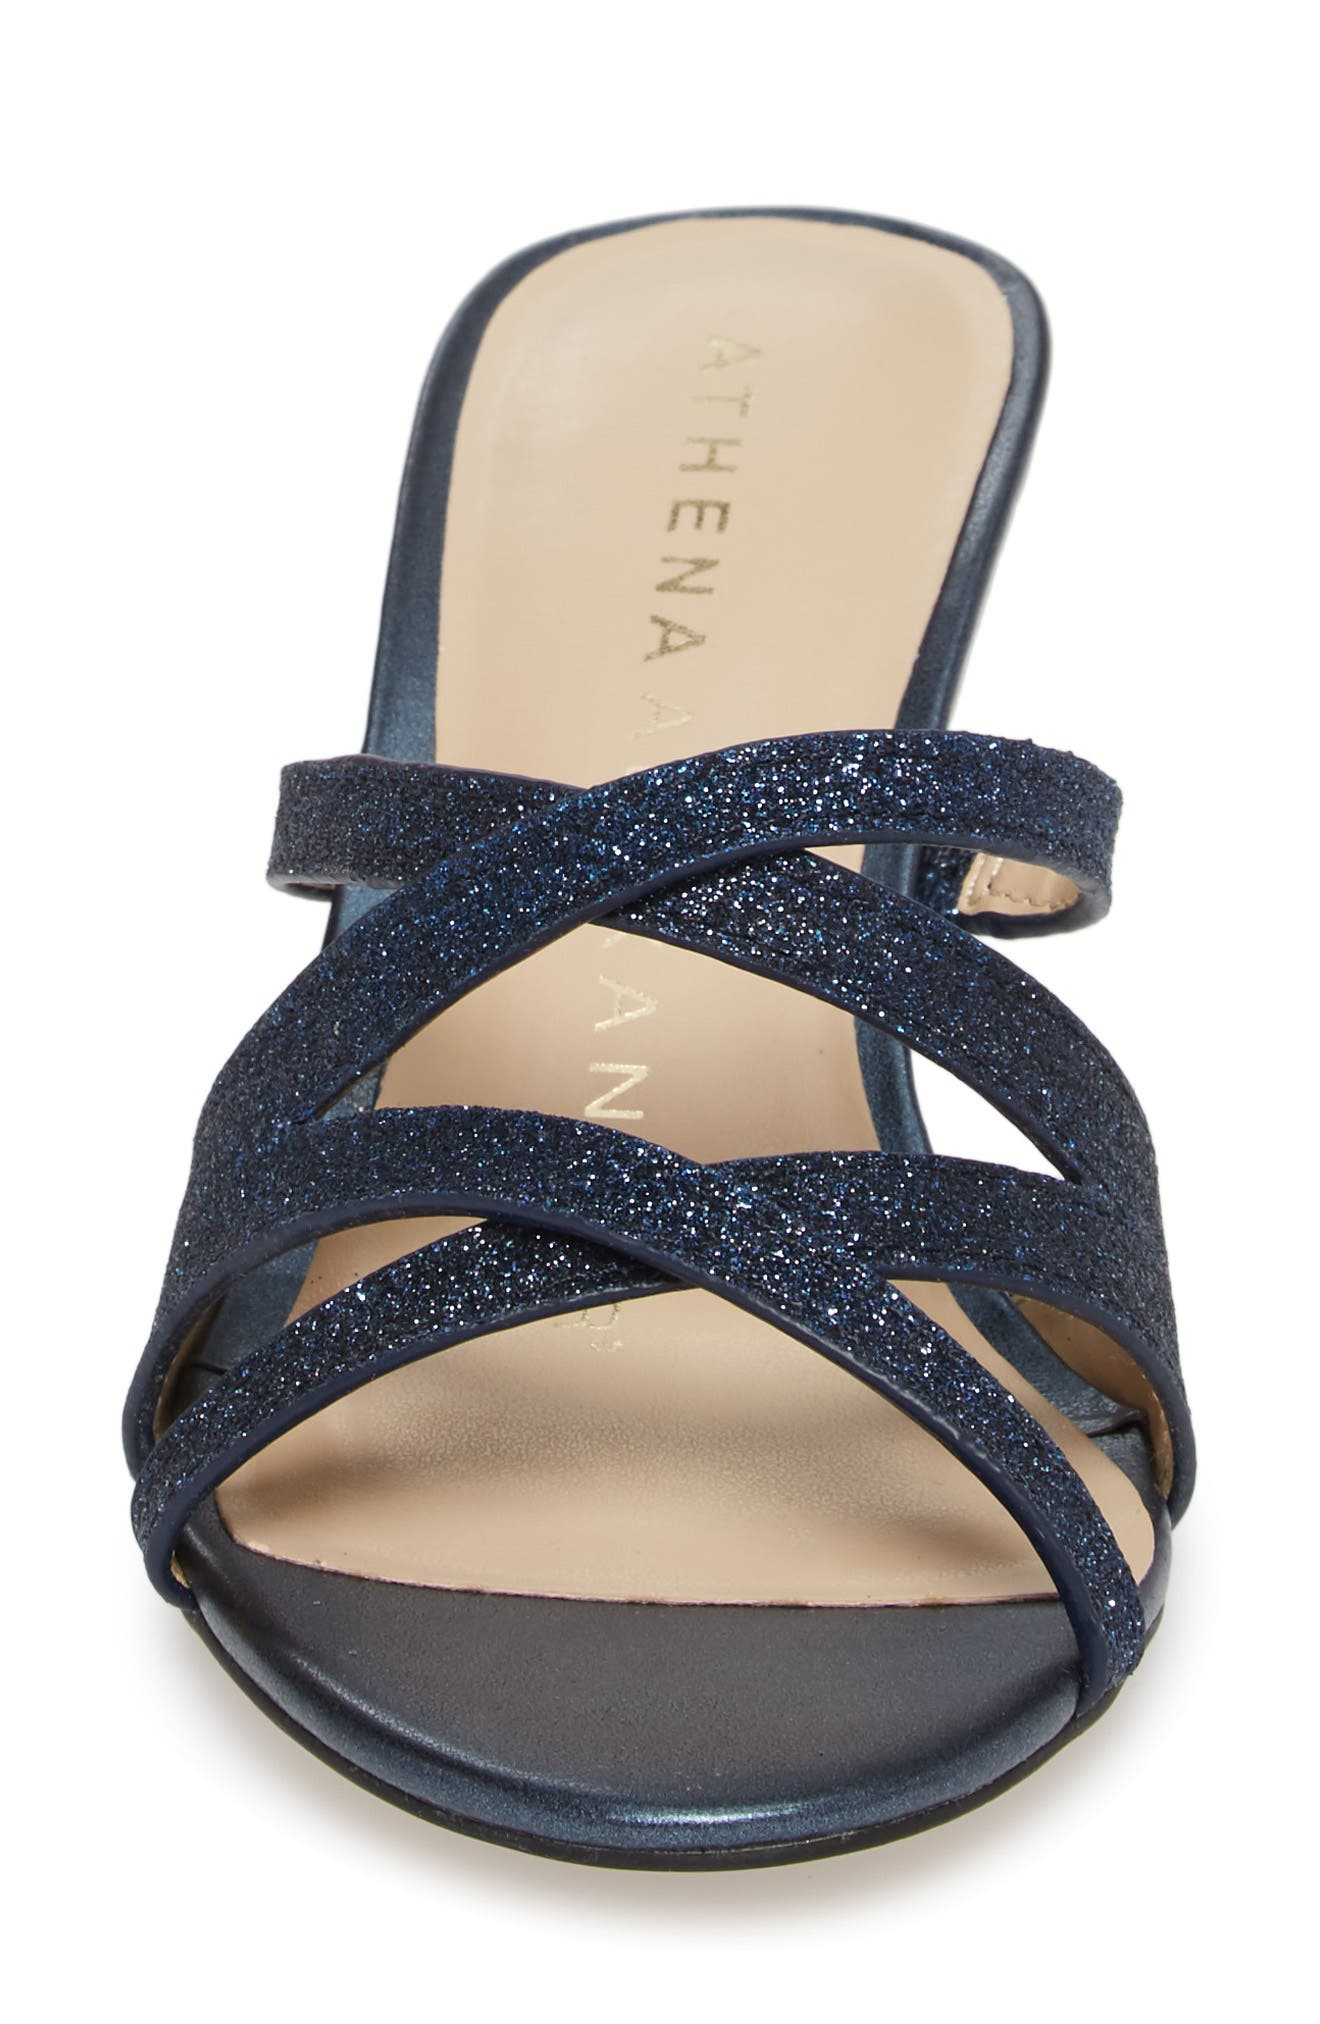 Starlite Sandal,                             Alternate thumbnail 4, color,                             Navy Fabric